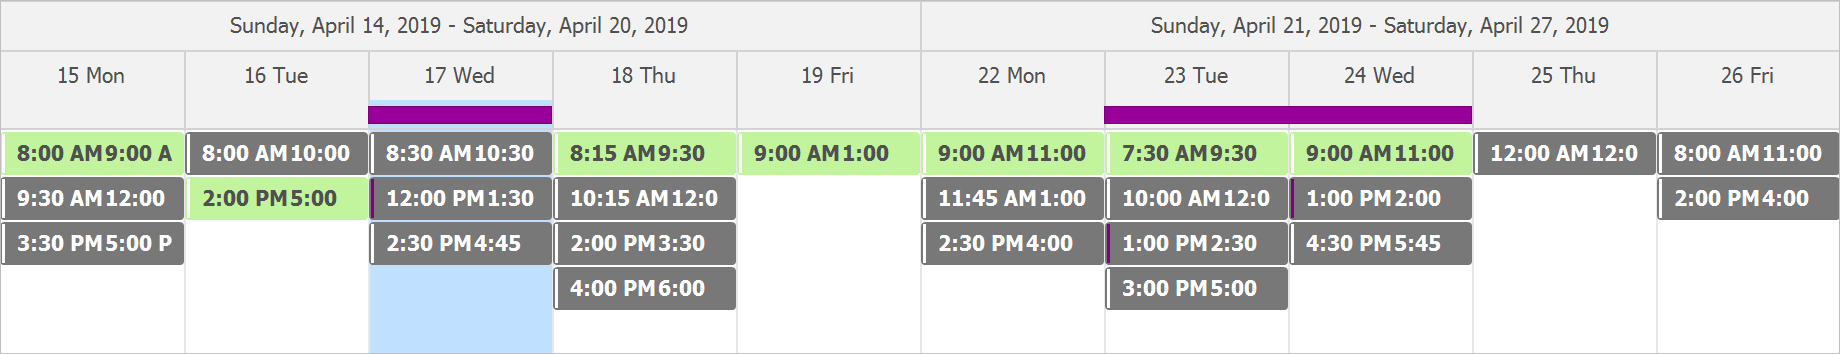 Timeline View - Remove Specific Time Intervals